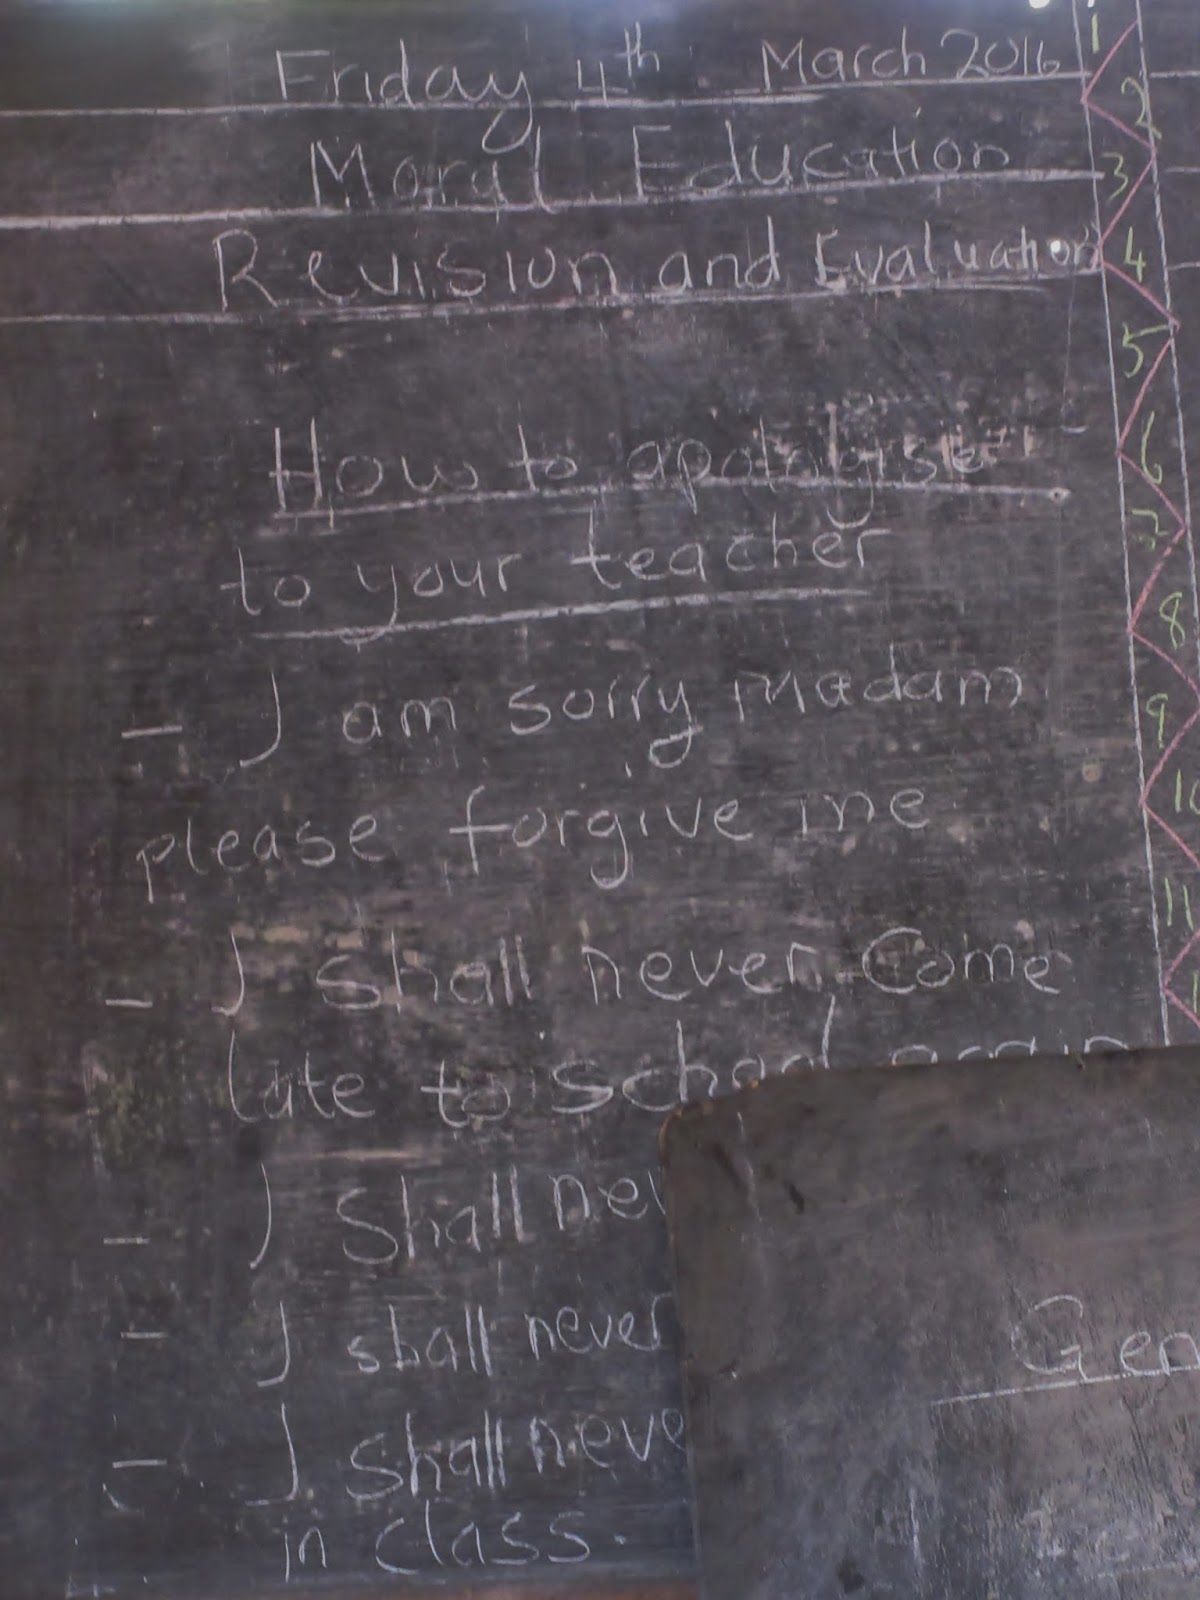 Moral Education In A Classroom In The Fon's Palace: How To Apologize To  Your Teacher